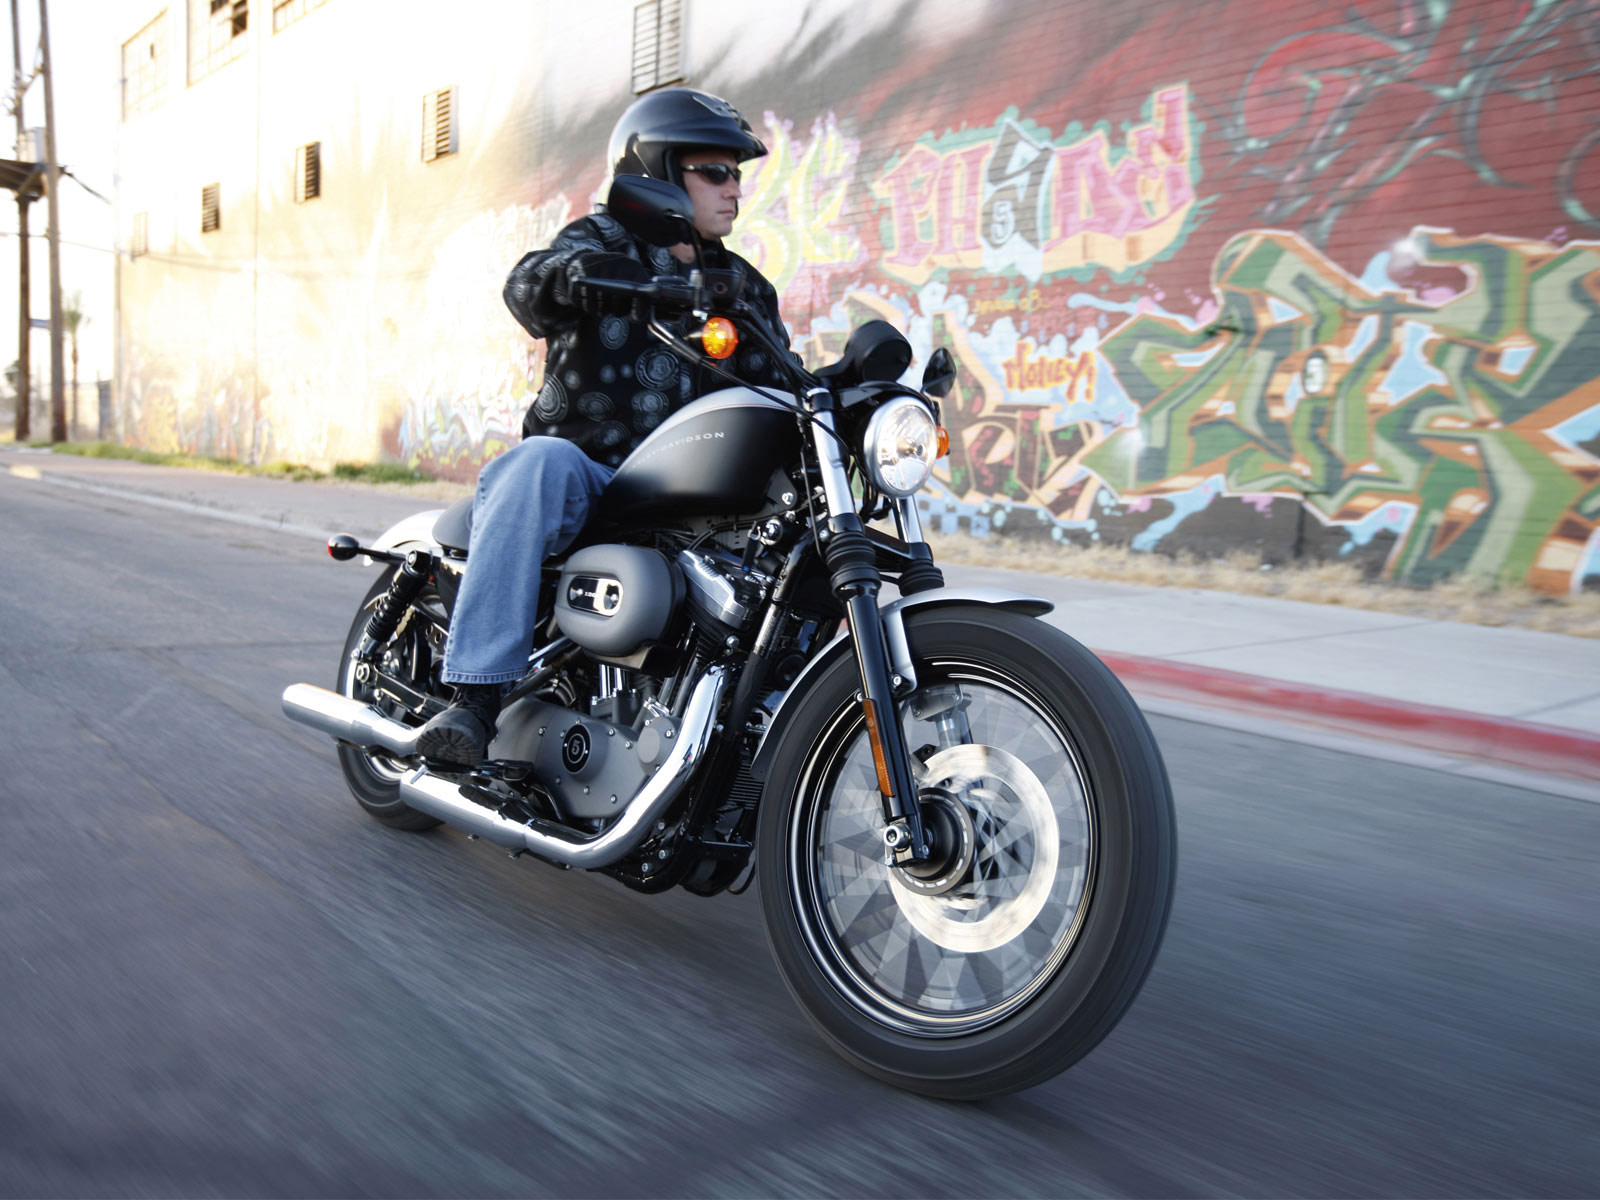 Affordable Auto Insurance >> 2010 Harley-Davidson XL 1200N Sportster 1200 Nightster